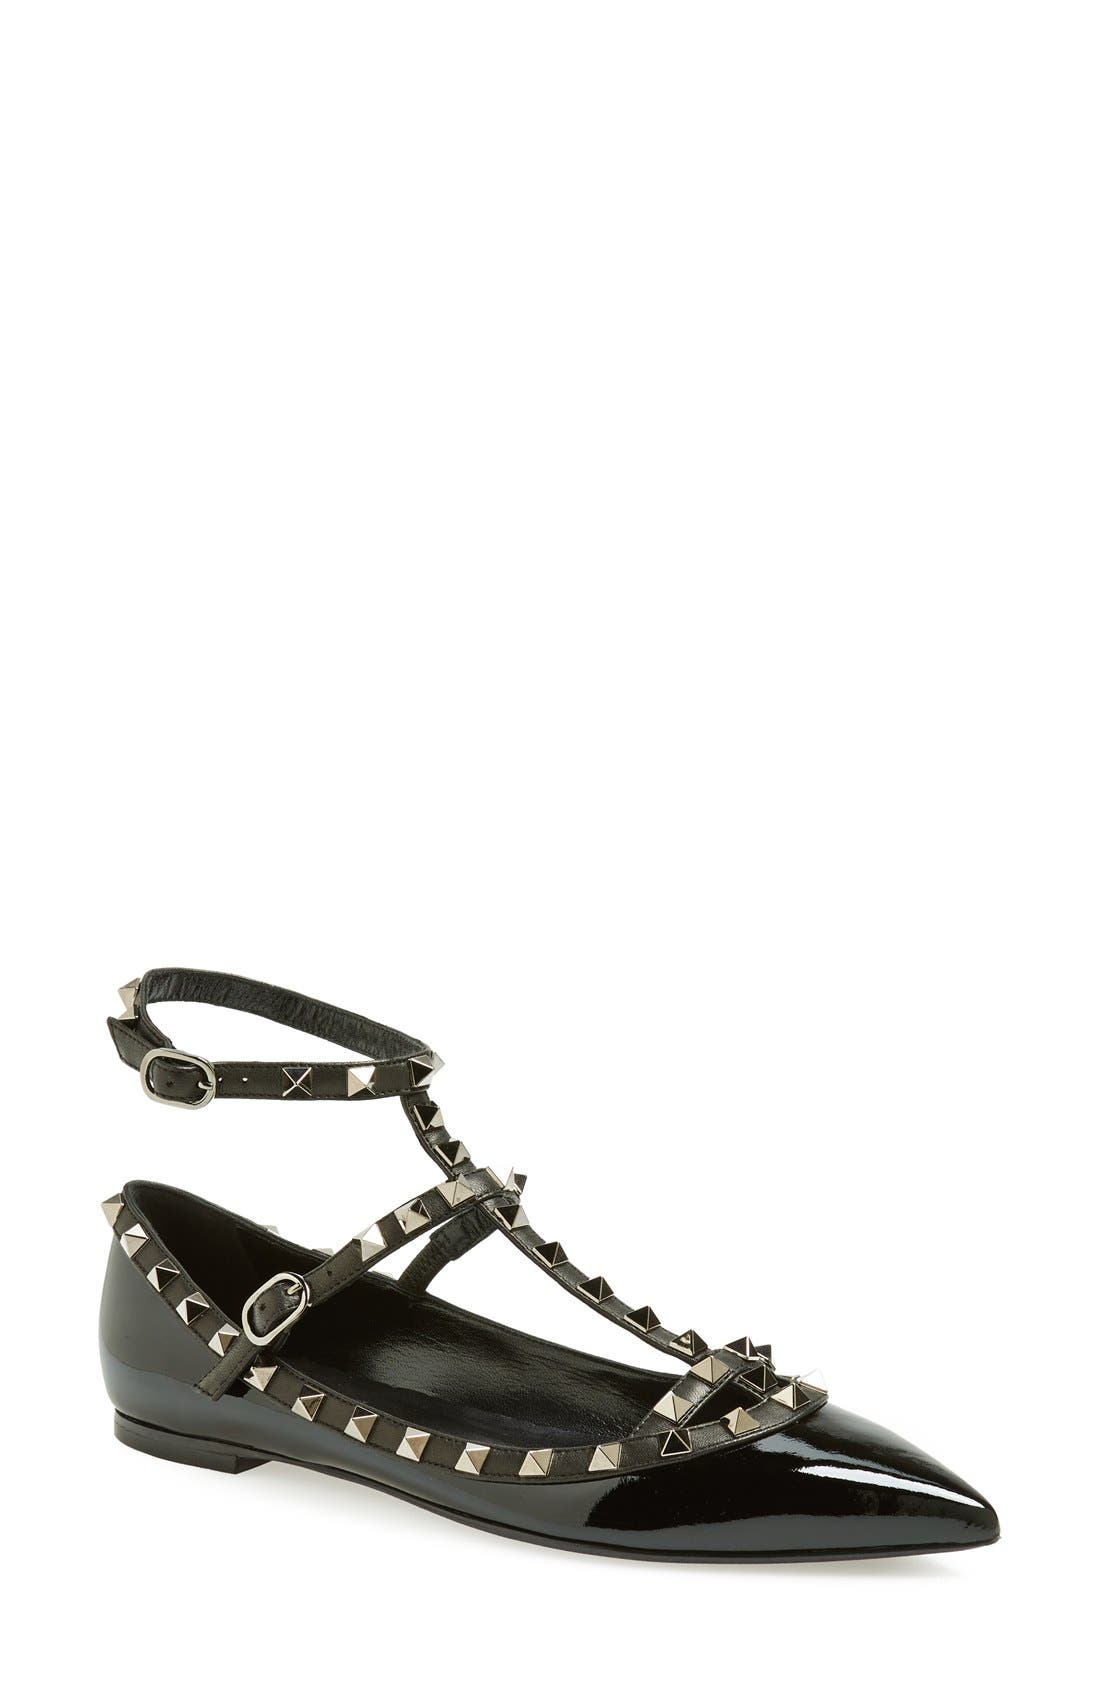 Main Image - Valentino 'Noir Rockstud' Double Ankle Strap Patent Leather Pointy Toe Flat (Women)